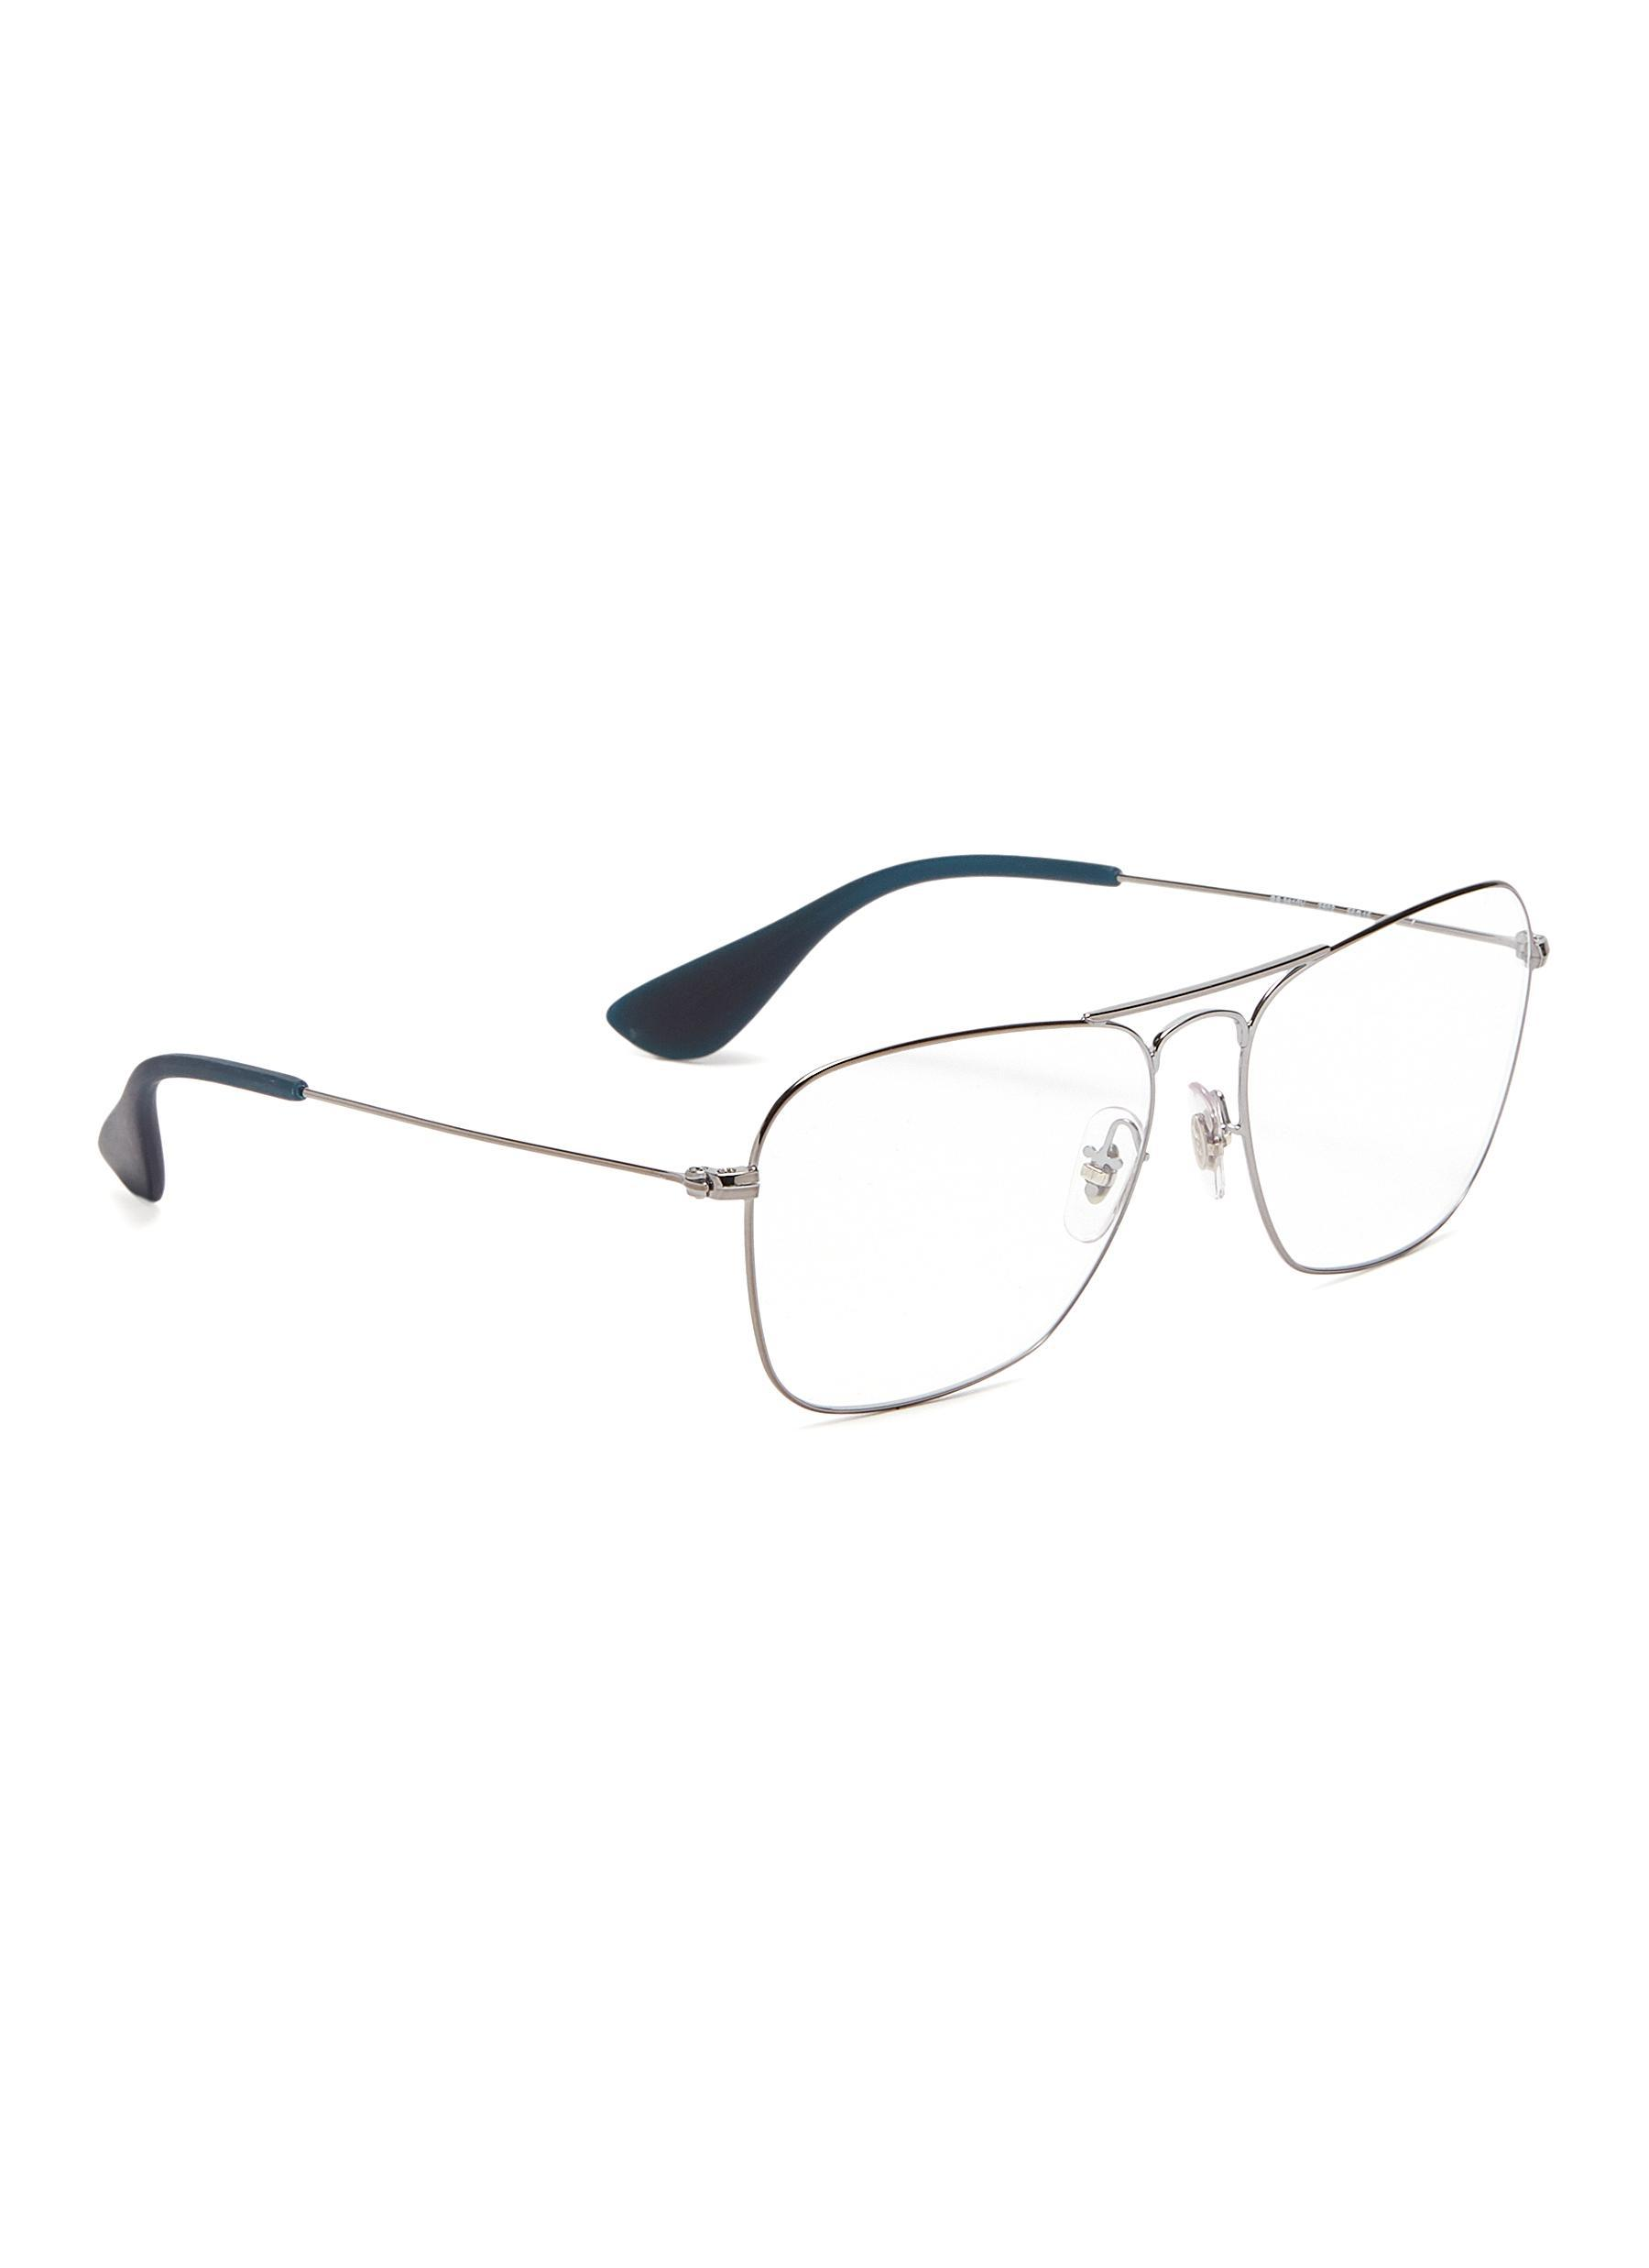 a9203197ca5 Ray-Ban - Gray  rx3610  Metal Square Aviator Optical Glasses for Men -.  View fullscreen